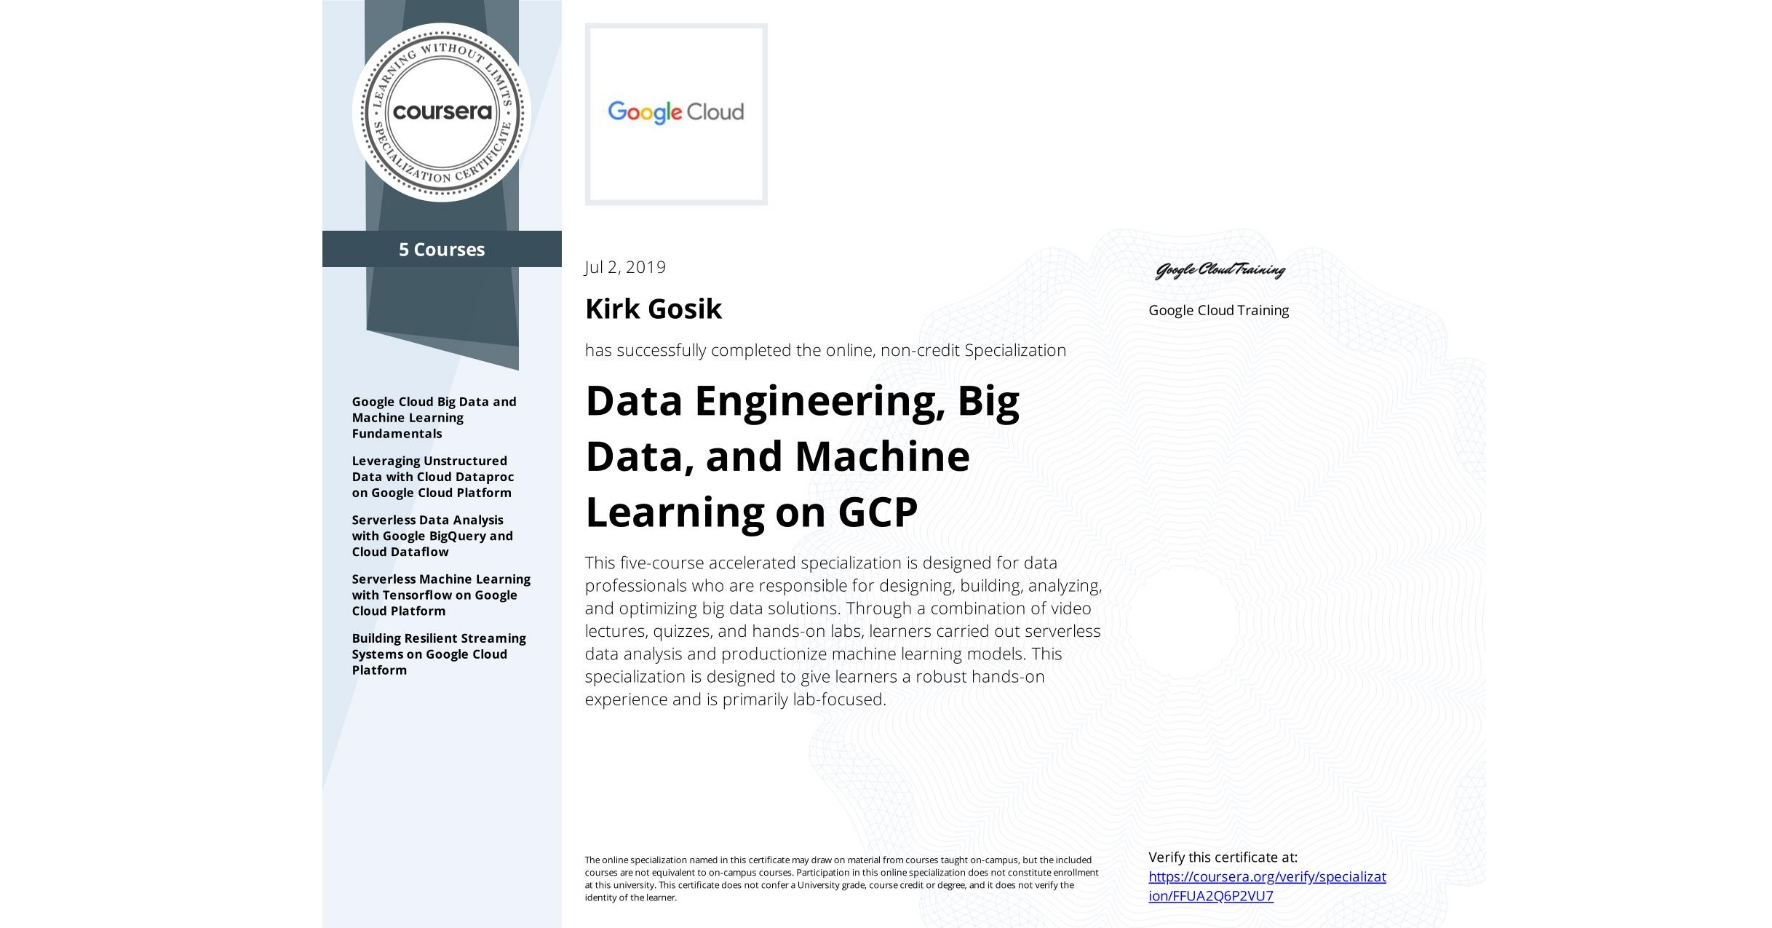 View certificate for Kirk Gosik, Data Engineering, Big Data, and Machine Learning on GCP, offered through Coursera. This five-course accelerated specialization is designed for data professionals who are responsible for designing, building, analyzing, and optimizing big data solutions. Through a combination of video lectures, quizzes, and hands-on labs, learners carried out serverless data analysis and productionize machine learning models. This specialization is designed to give learners a robust hands-on experience and is primarily lab-focused.